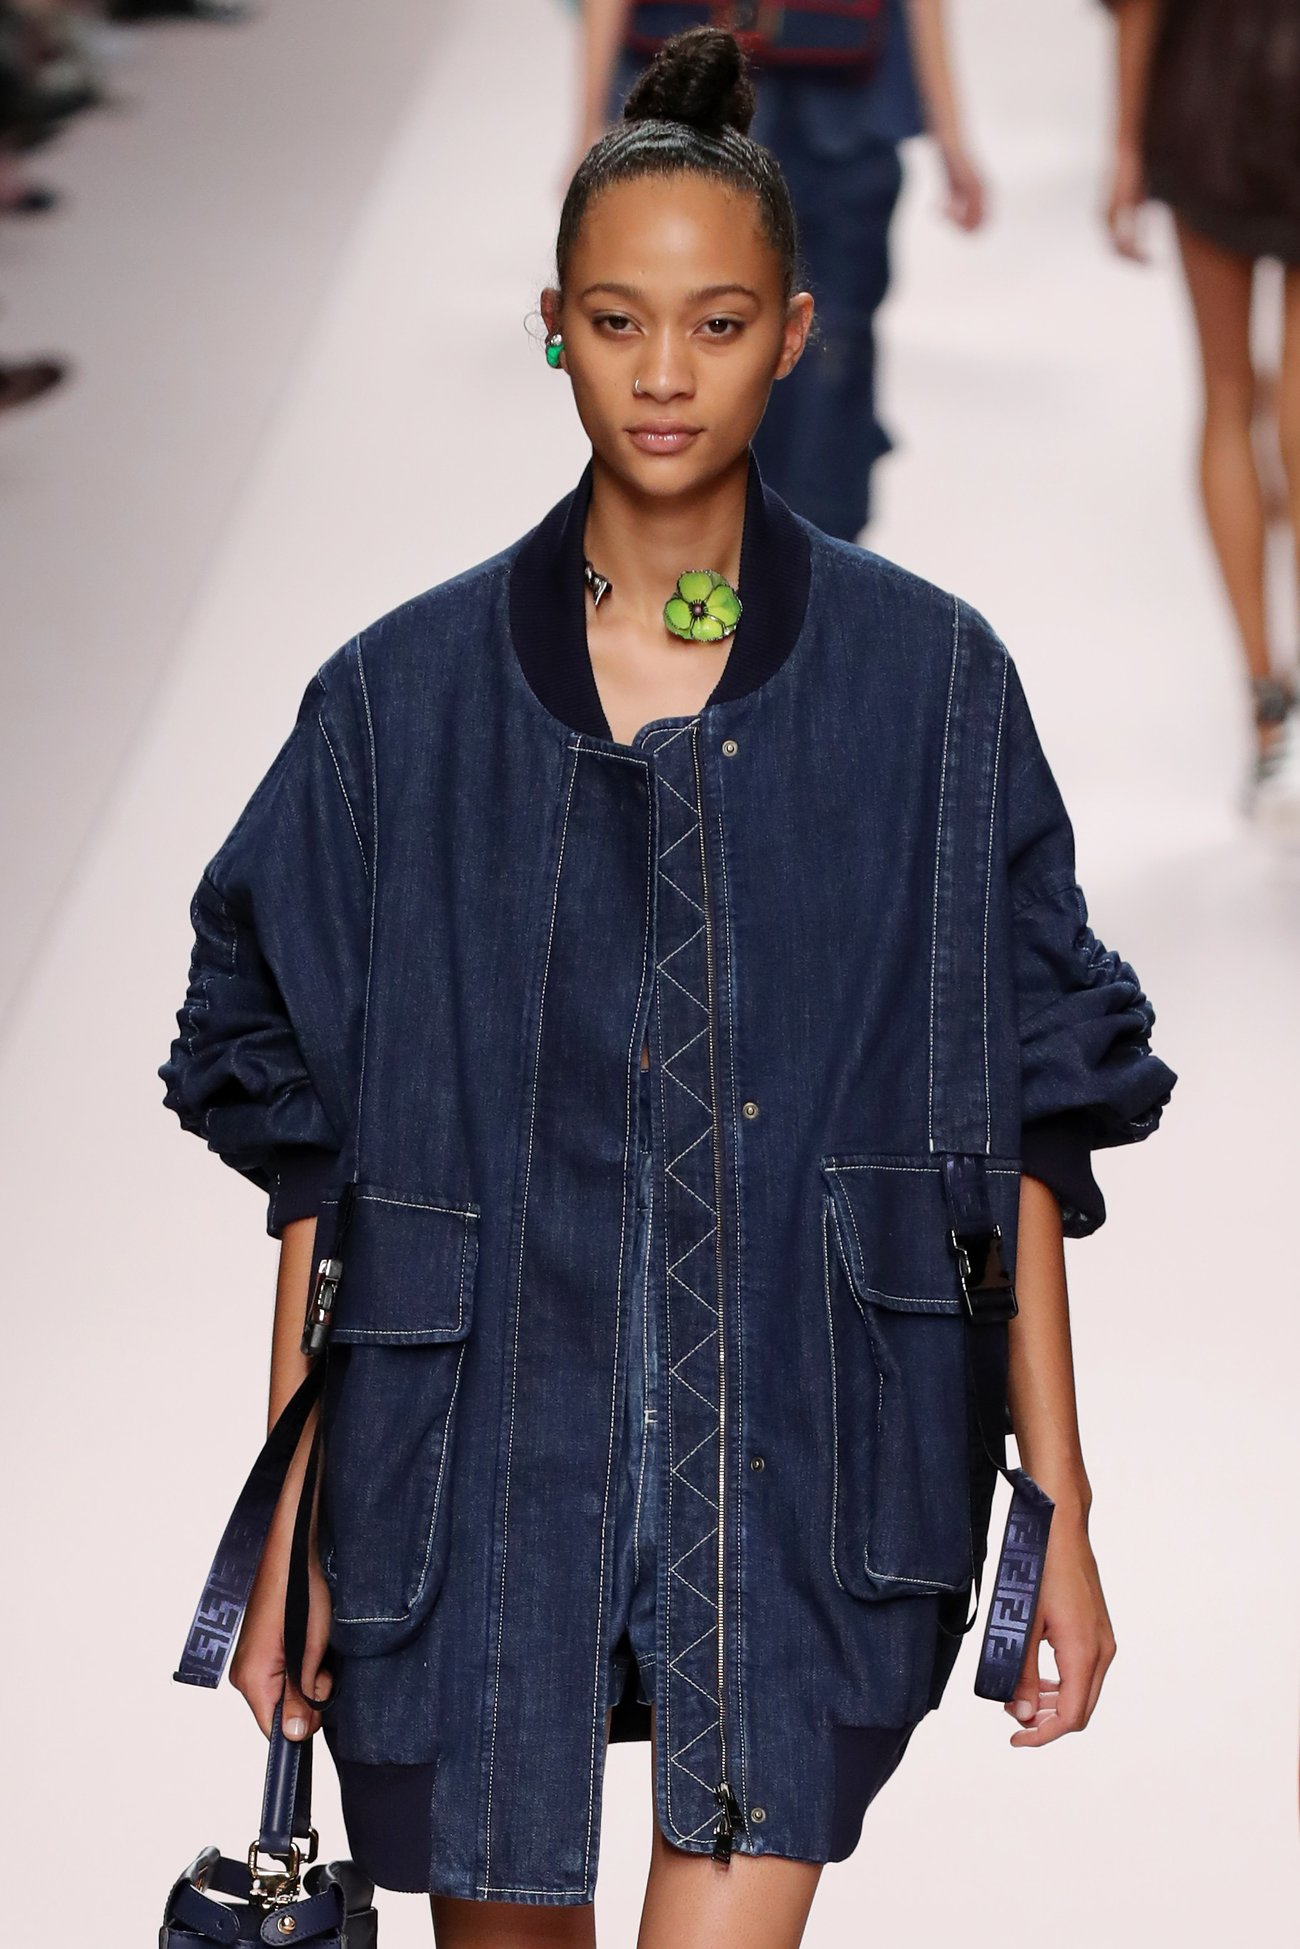 Jacken Trends 2019 Oversize Denim